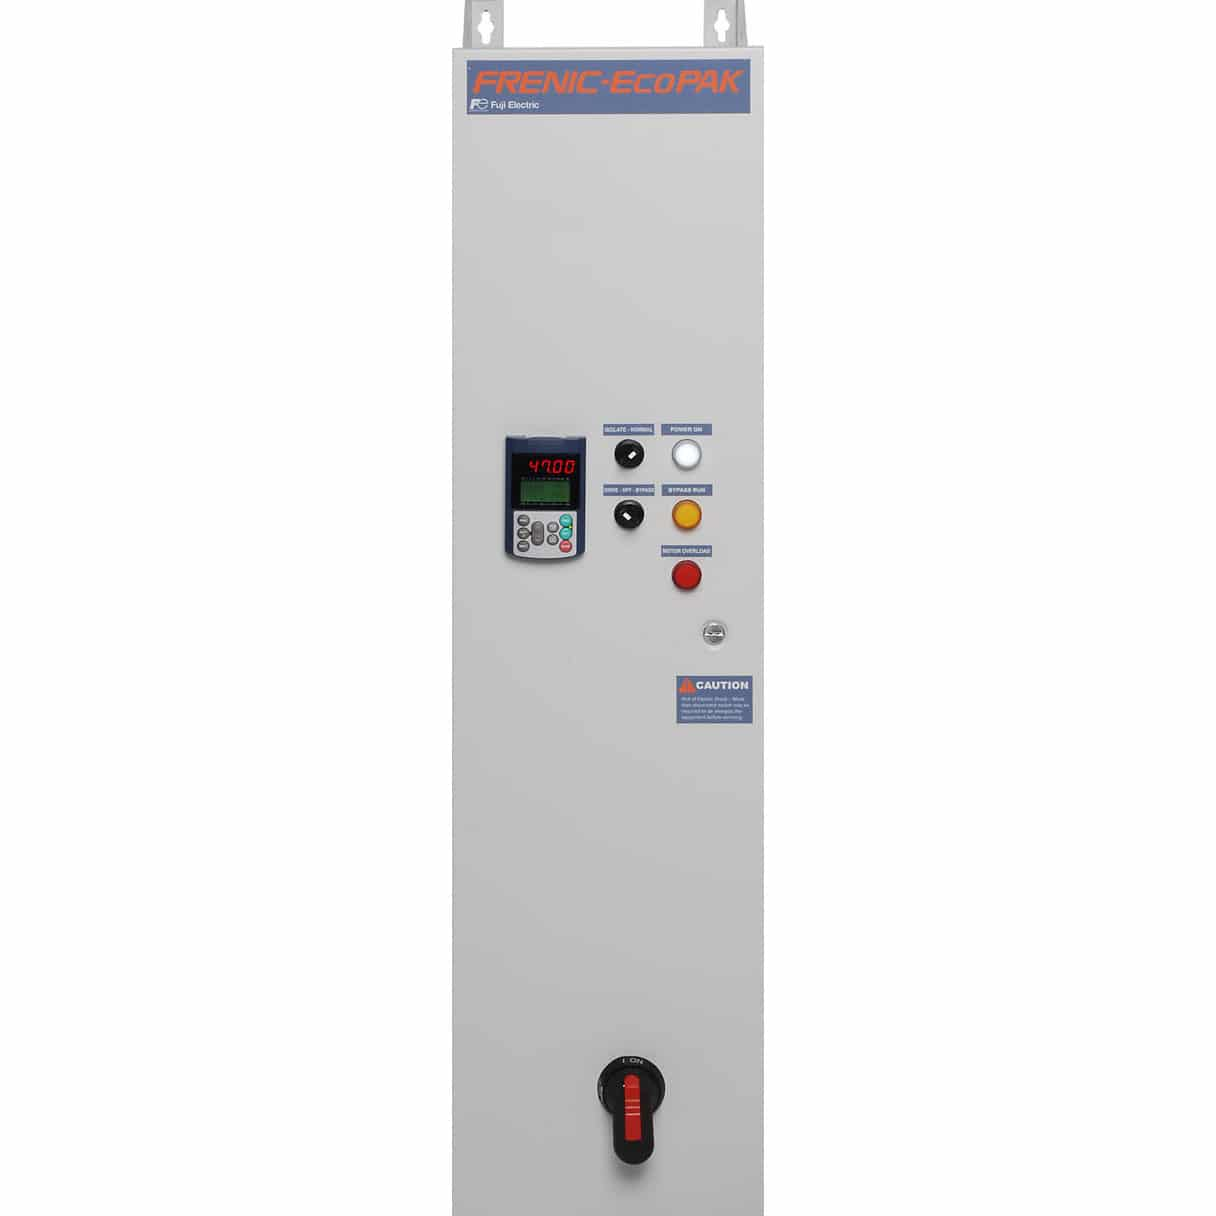 Vfd Drives Industrial Power Inverter Ac Fuji Electric Variable Frequency Drive Electronics Hobby Frenic Hpaq Ecopak